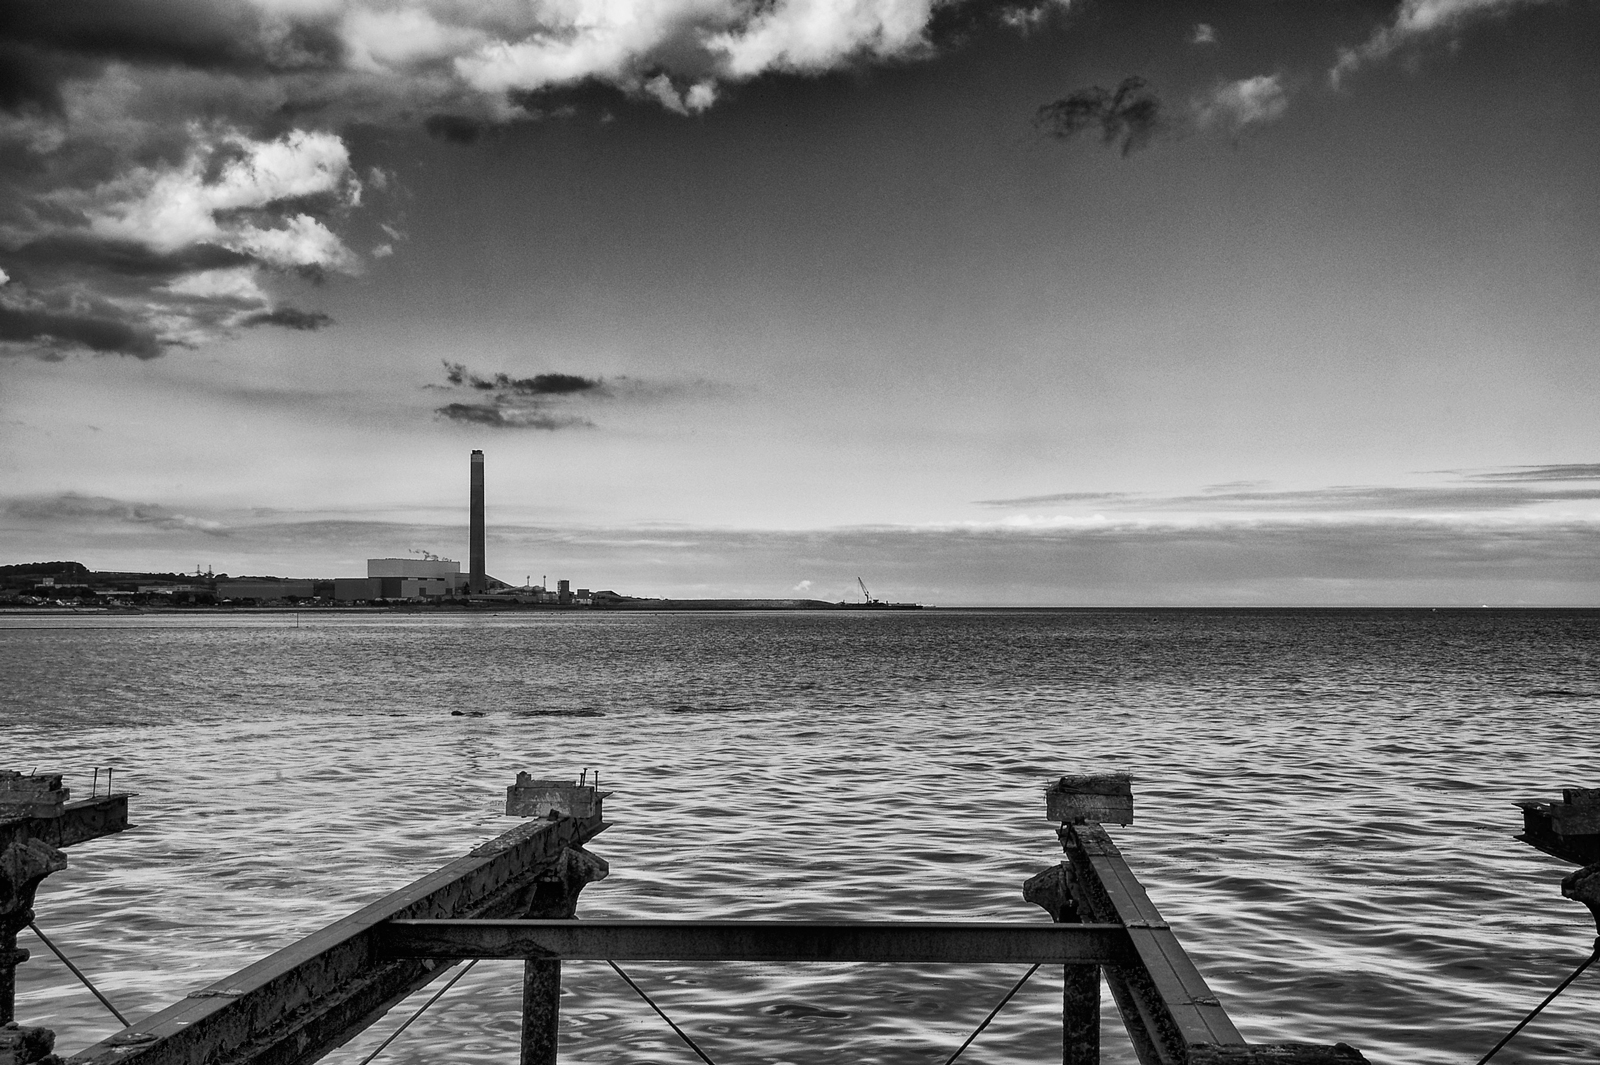 Coastal Image from Carrickfergus overlooking Ballylumford Power Station